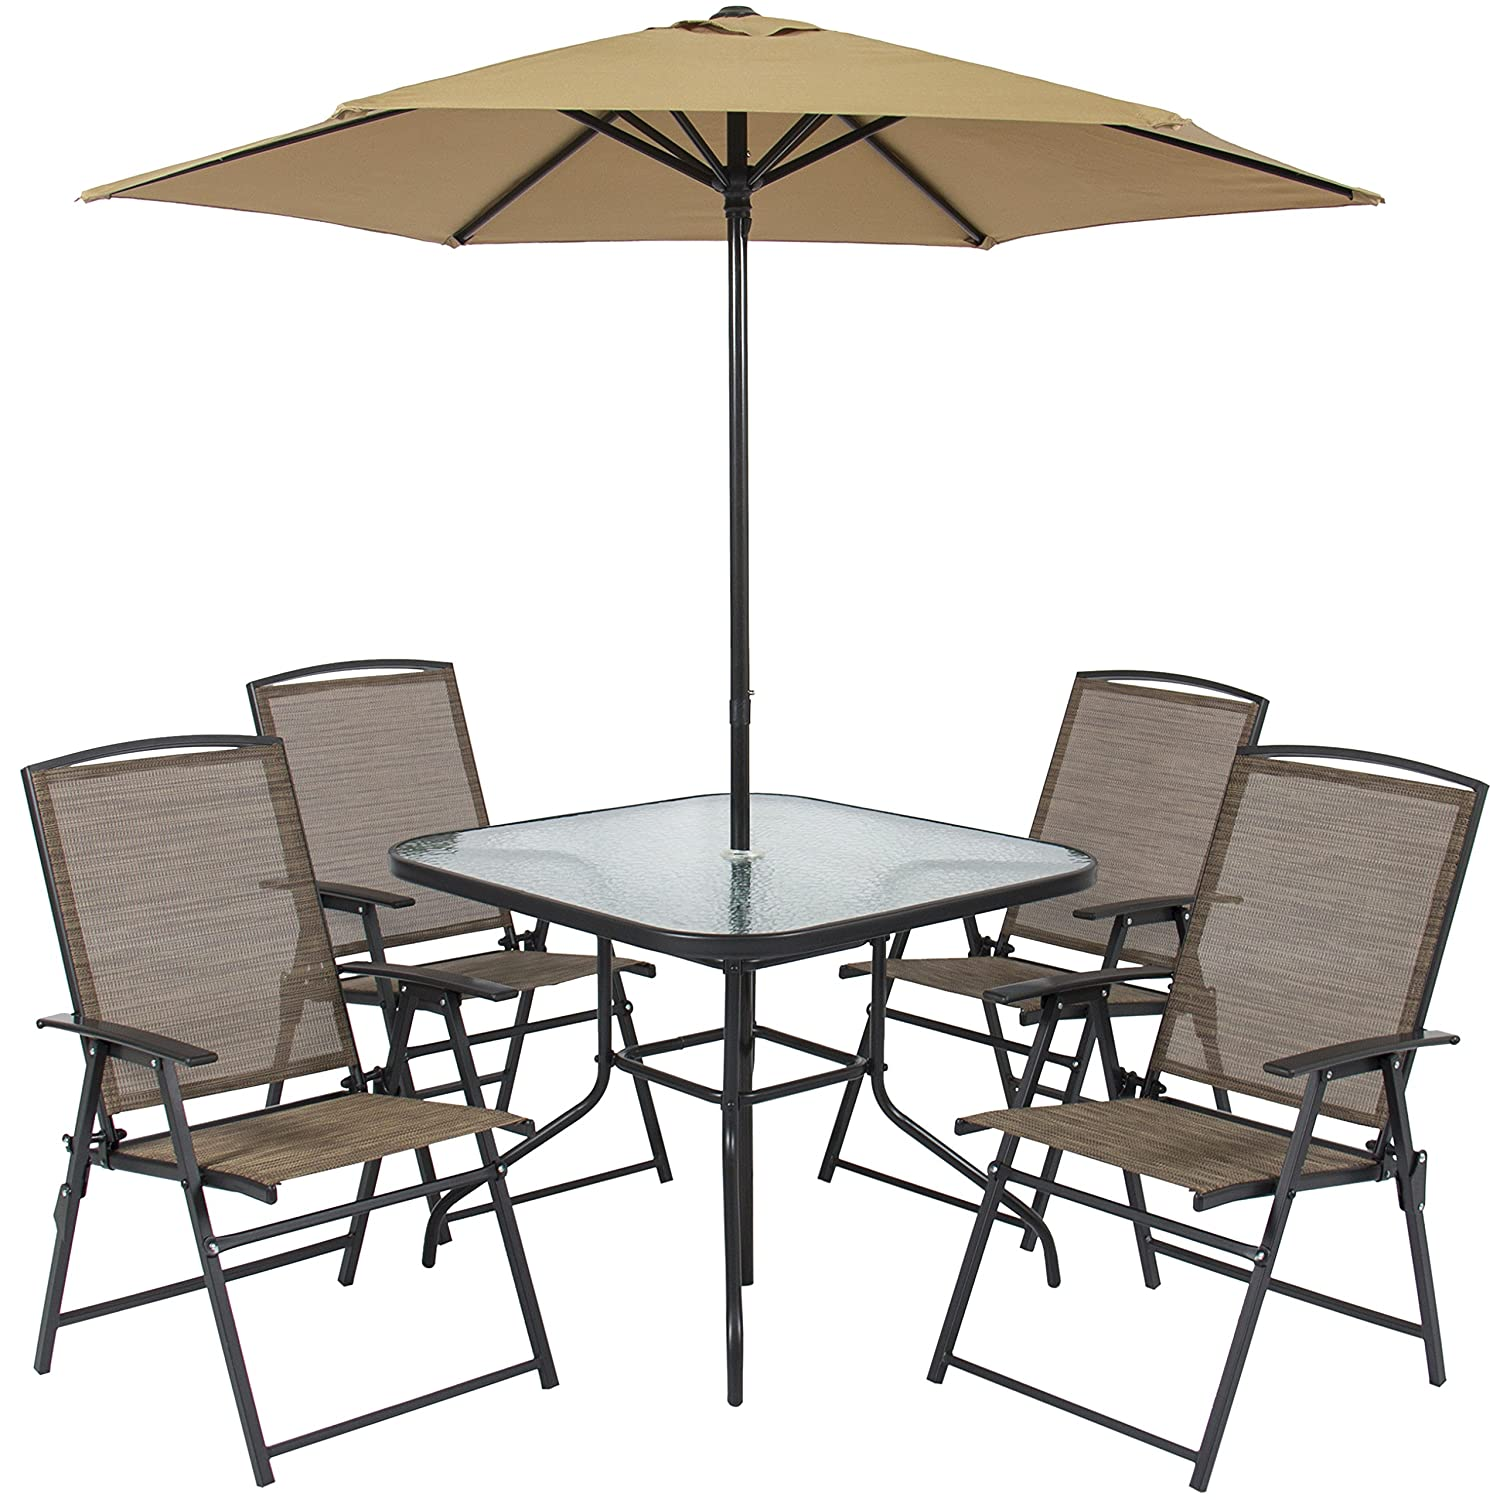 amazoncom best choice products 6pc outdoor folding patio dining set w table 4 chairs umbrella and built in base garden outdoor - Garden Furniture 6 Seats